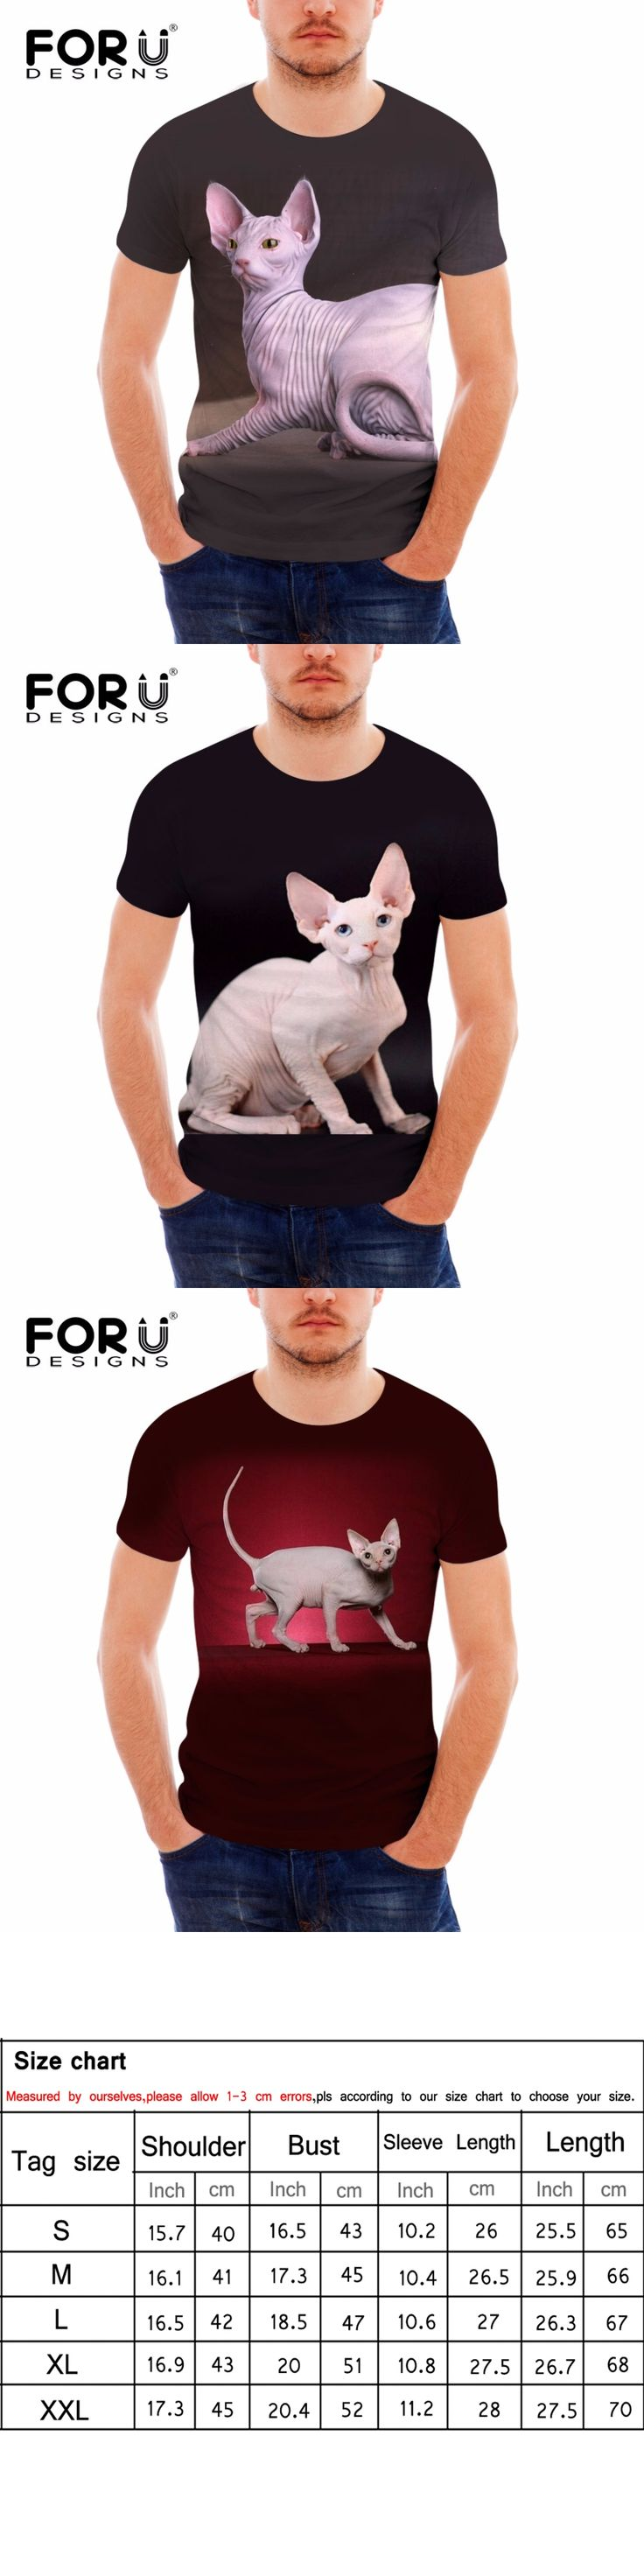 FORUDESIGNS Brand Designer Men Women T Shirts 3D Sphynx Printed Top Tees for Male High Quality Streetwear Hip Hop Tees Wholesale